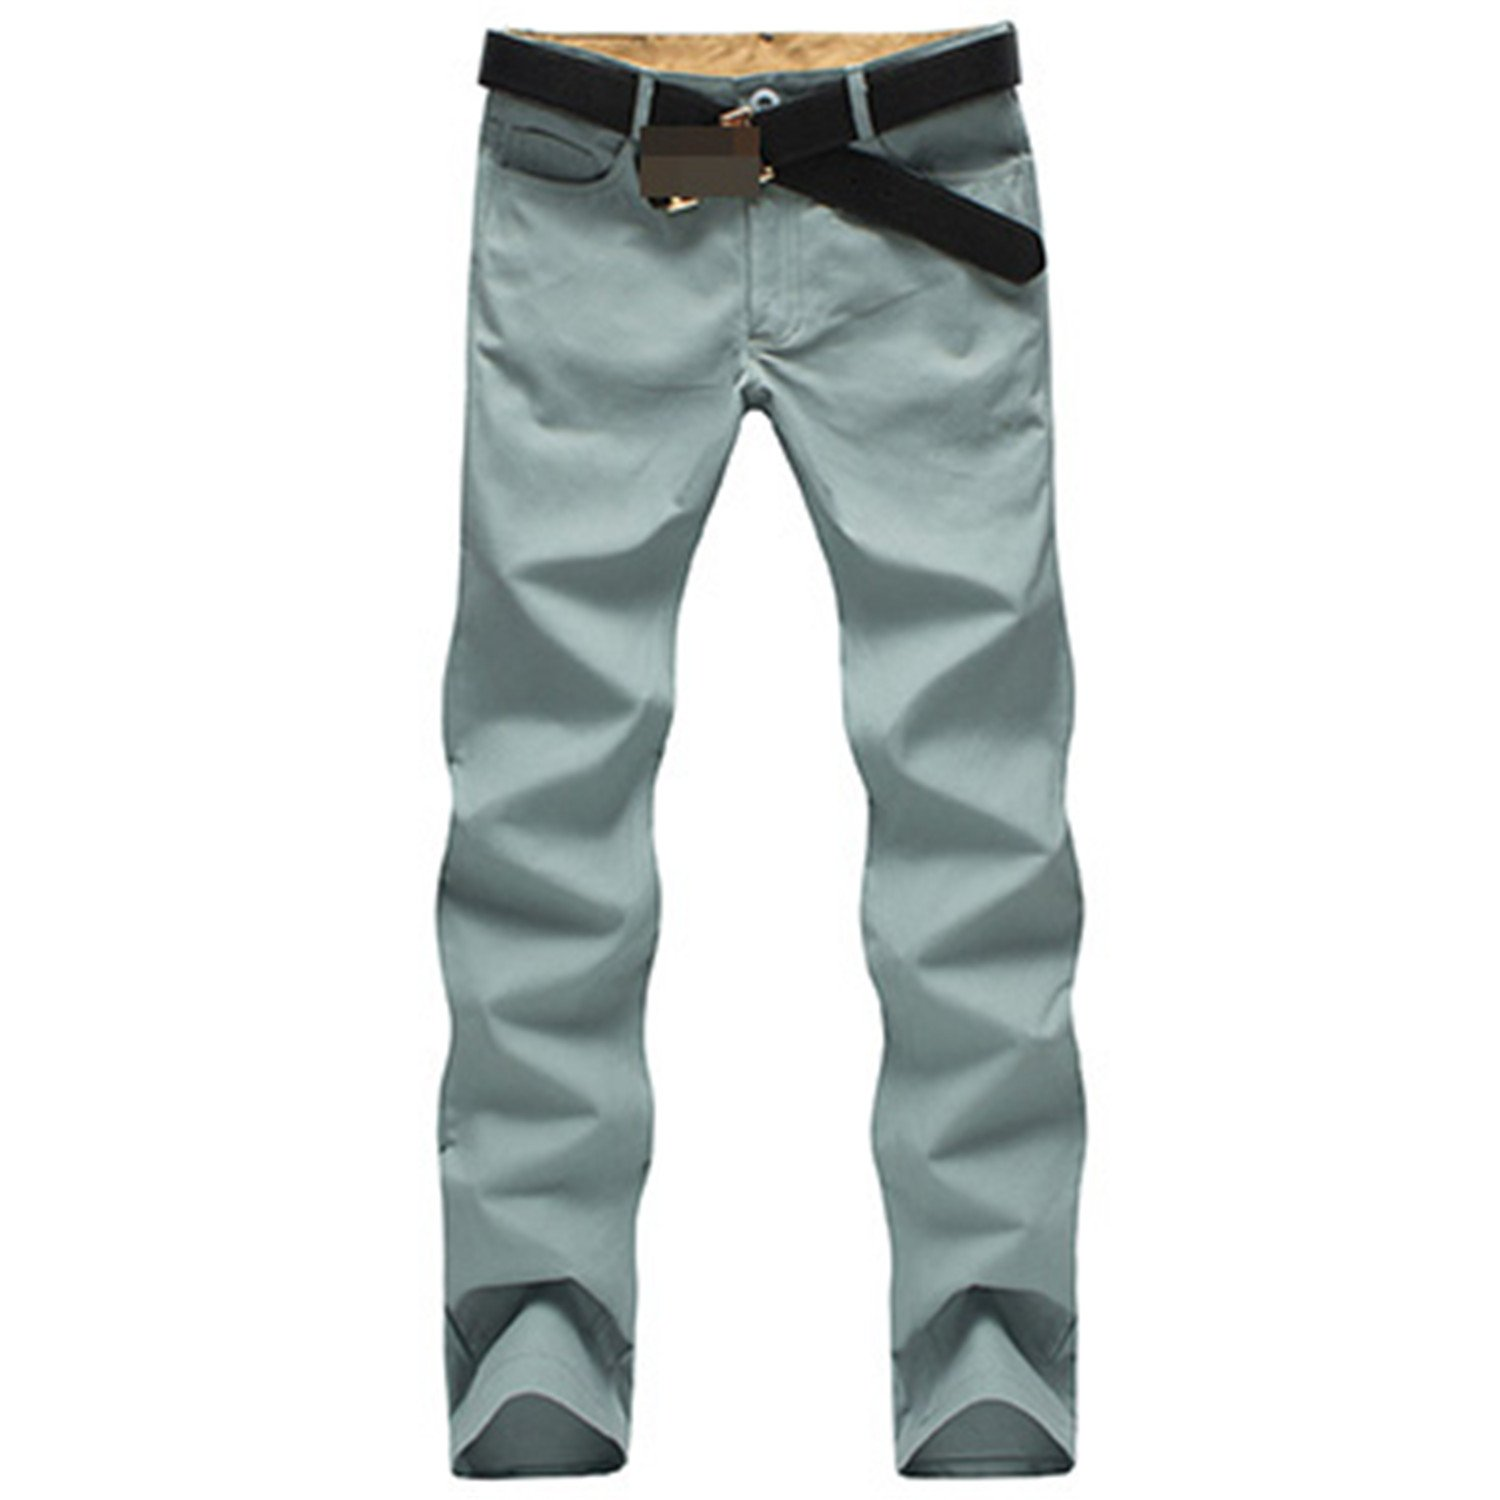 MRstriver New Fashion Men Pants Cotton Washed Casual Pants Men Straight Trousers 9 Colors Plus Size 28~44 Men's Clothing Gray Green 42 by MRstriver